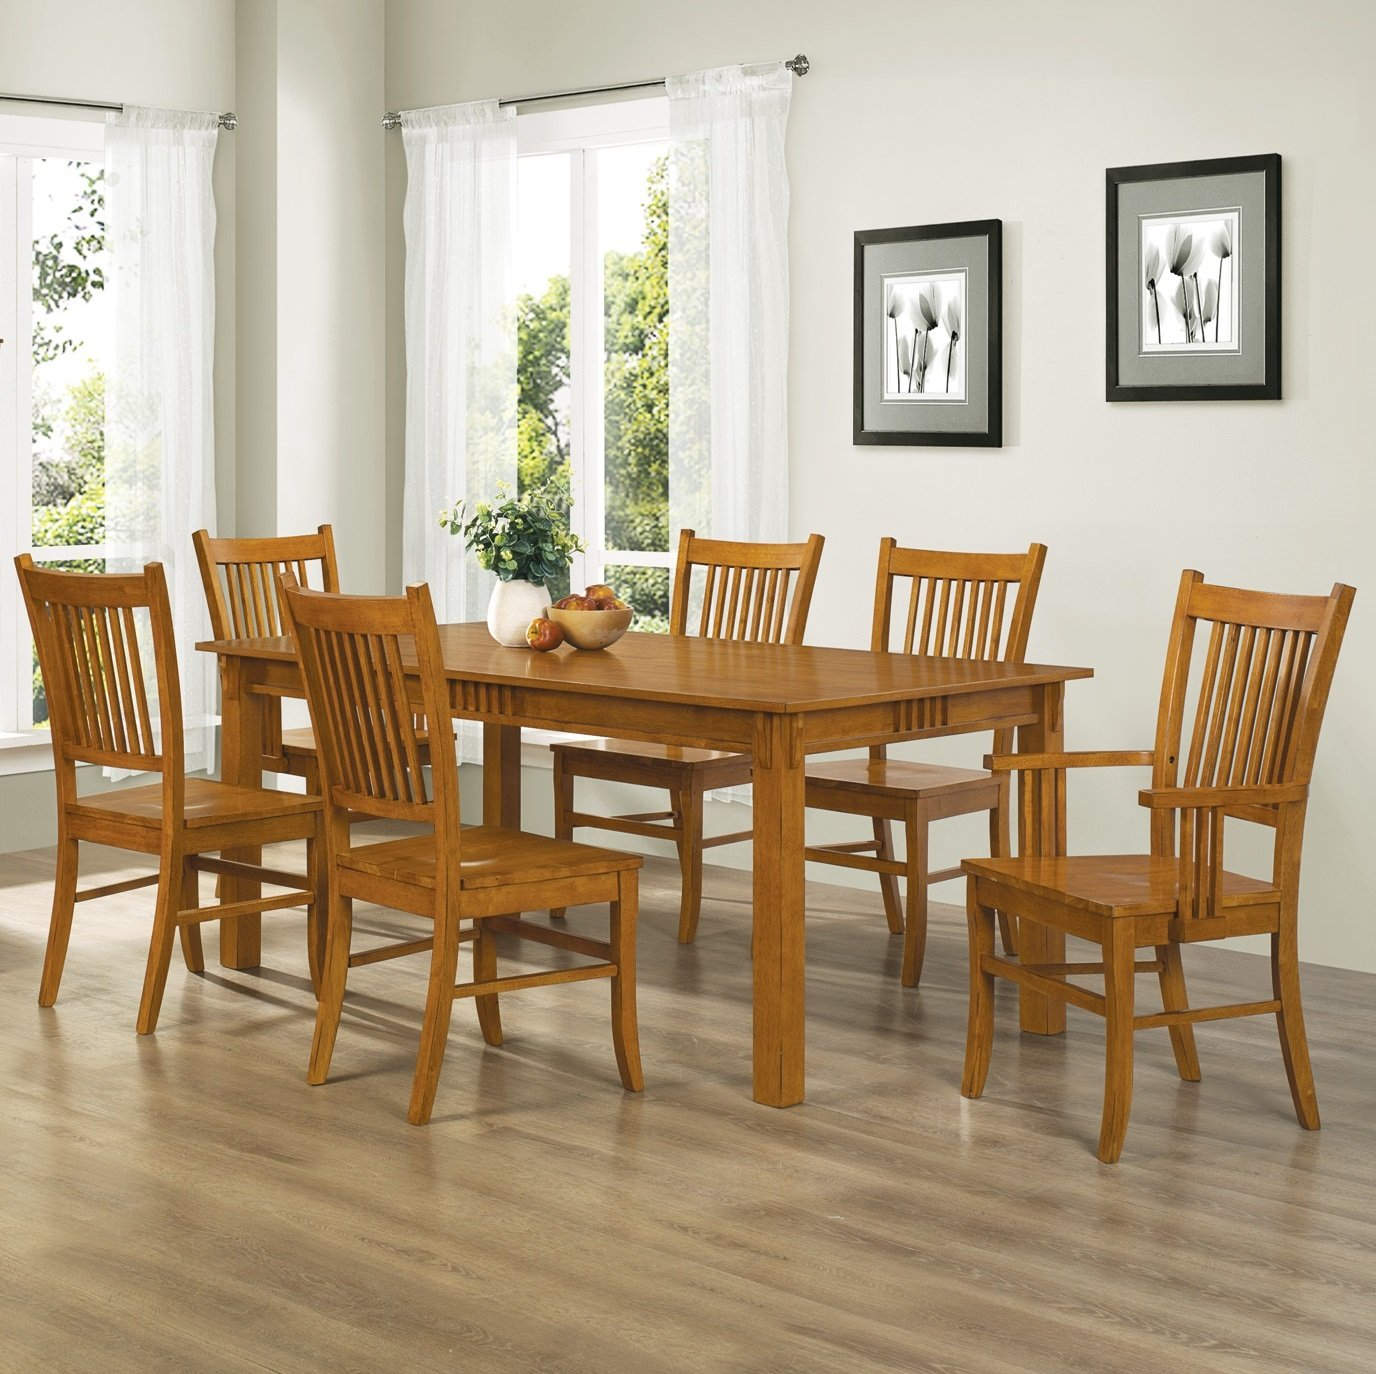 oak dining room sets. Amazon.com - Coaster Home Furnishings 7-Piece Mission Style Solid Hardwood Dining Table \u0026 Chairs Set Chair Sets Oak Room